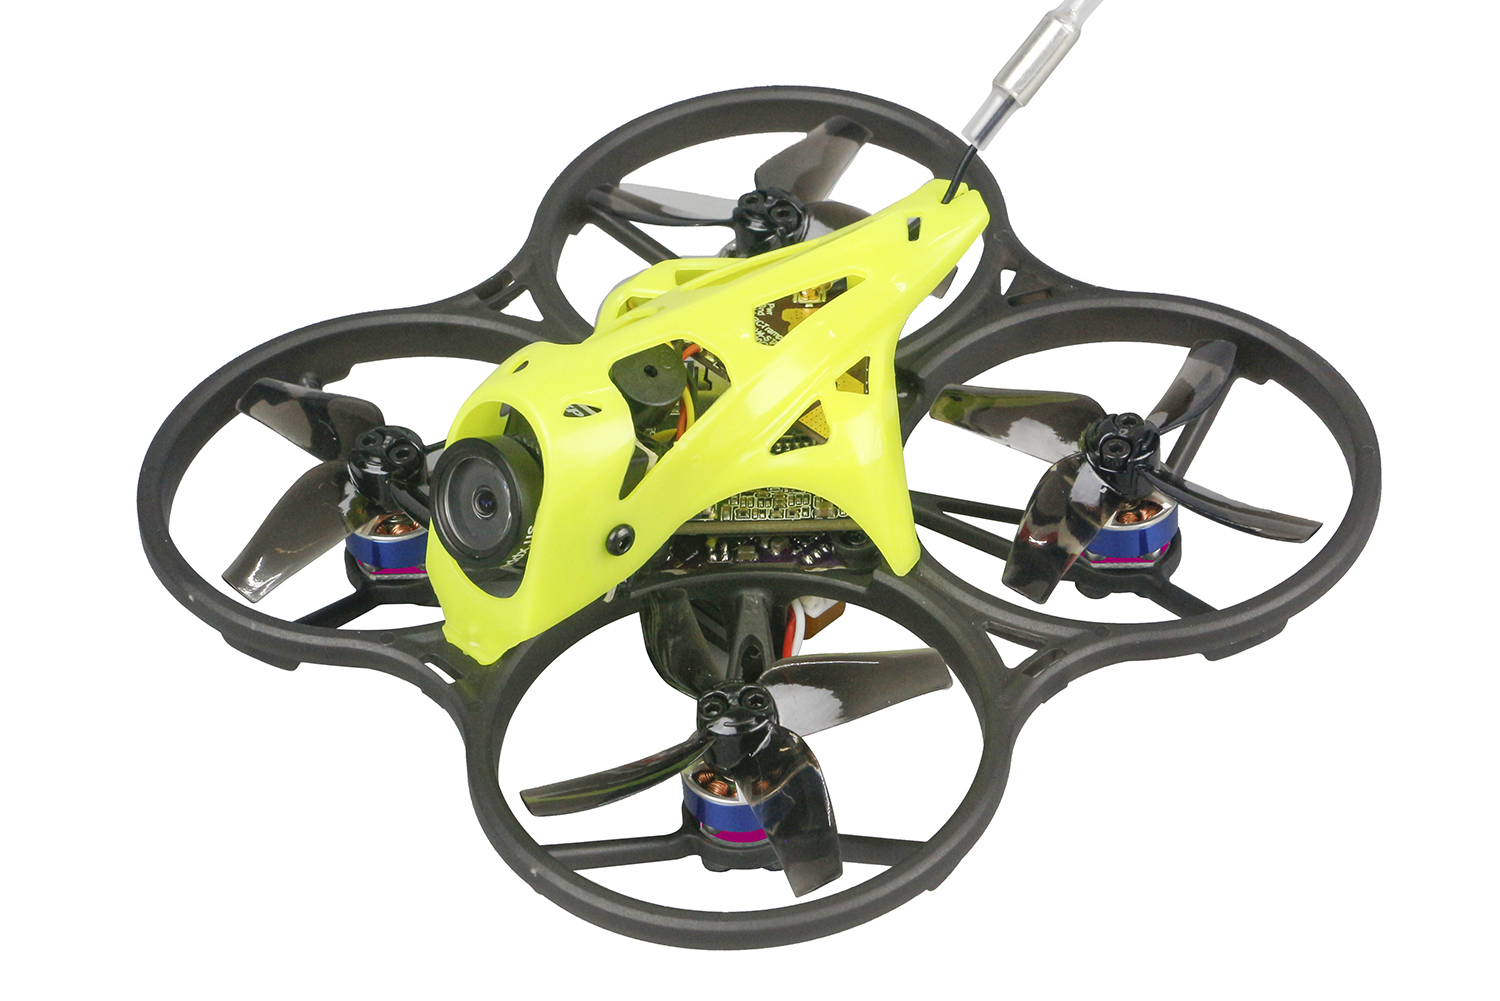 ET85 HD/4S CineWhoop FPV Caddx Turtle V2(LDARC/KING KONG))送信機付き、飛行調整済み(送料無料)